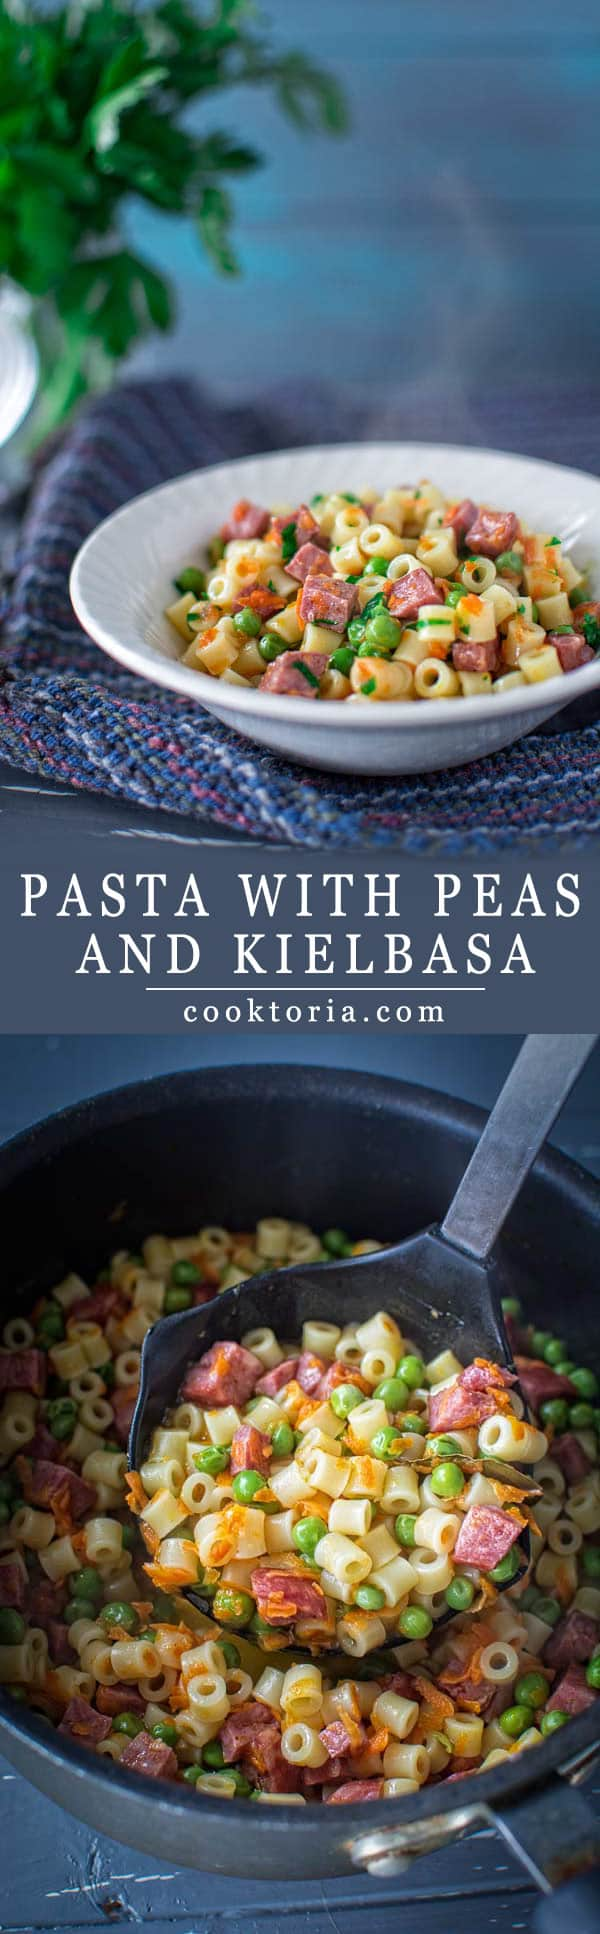 Tasty one-pot dinner in just 30 minutes! Ditalini pasta married with peas, kielbasa and carrots. Give it a try! ❤ COOKTORIA.COM